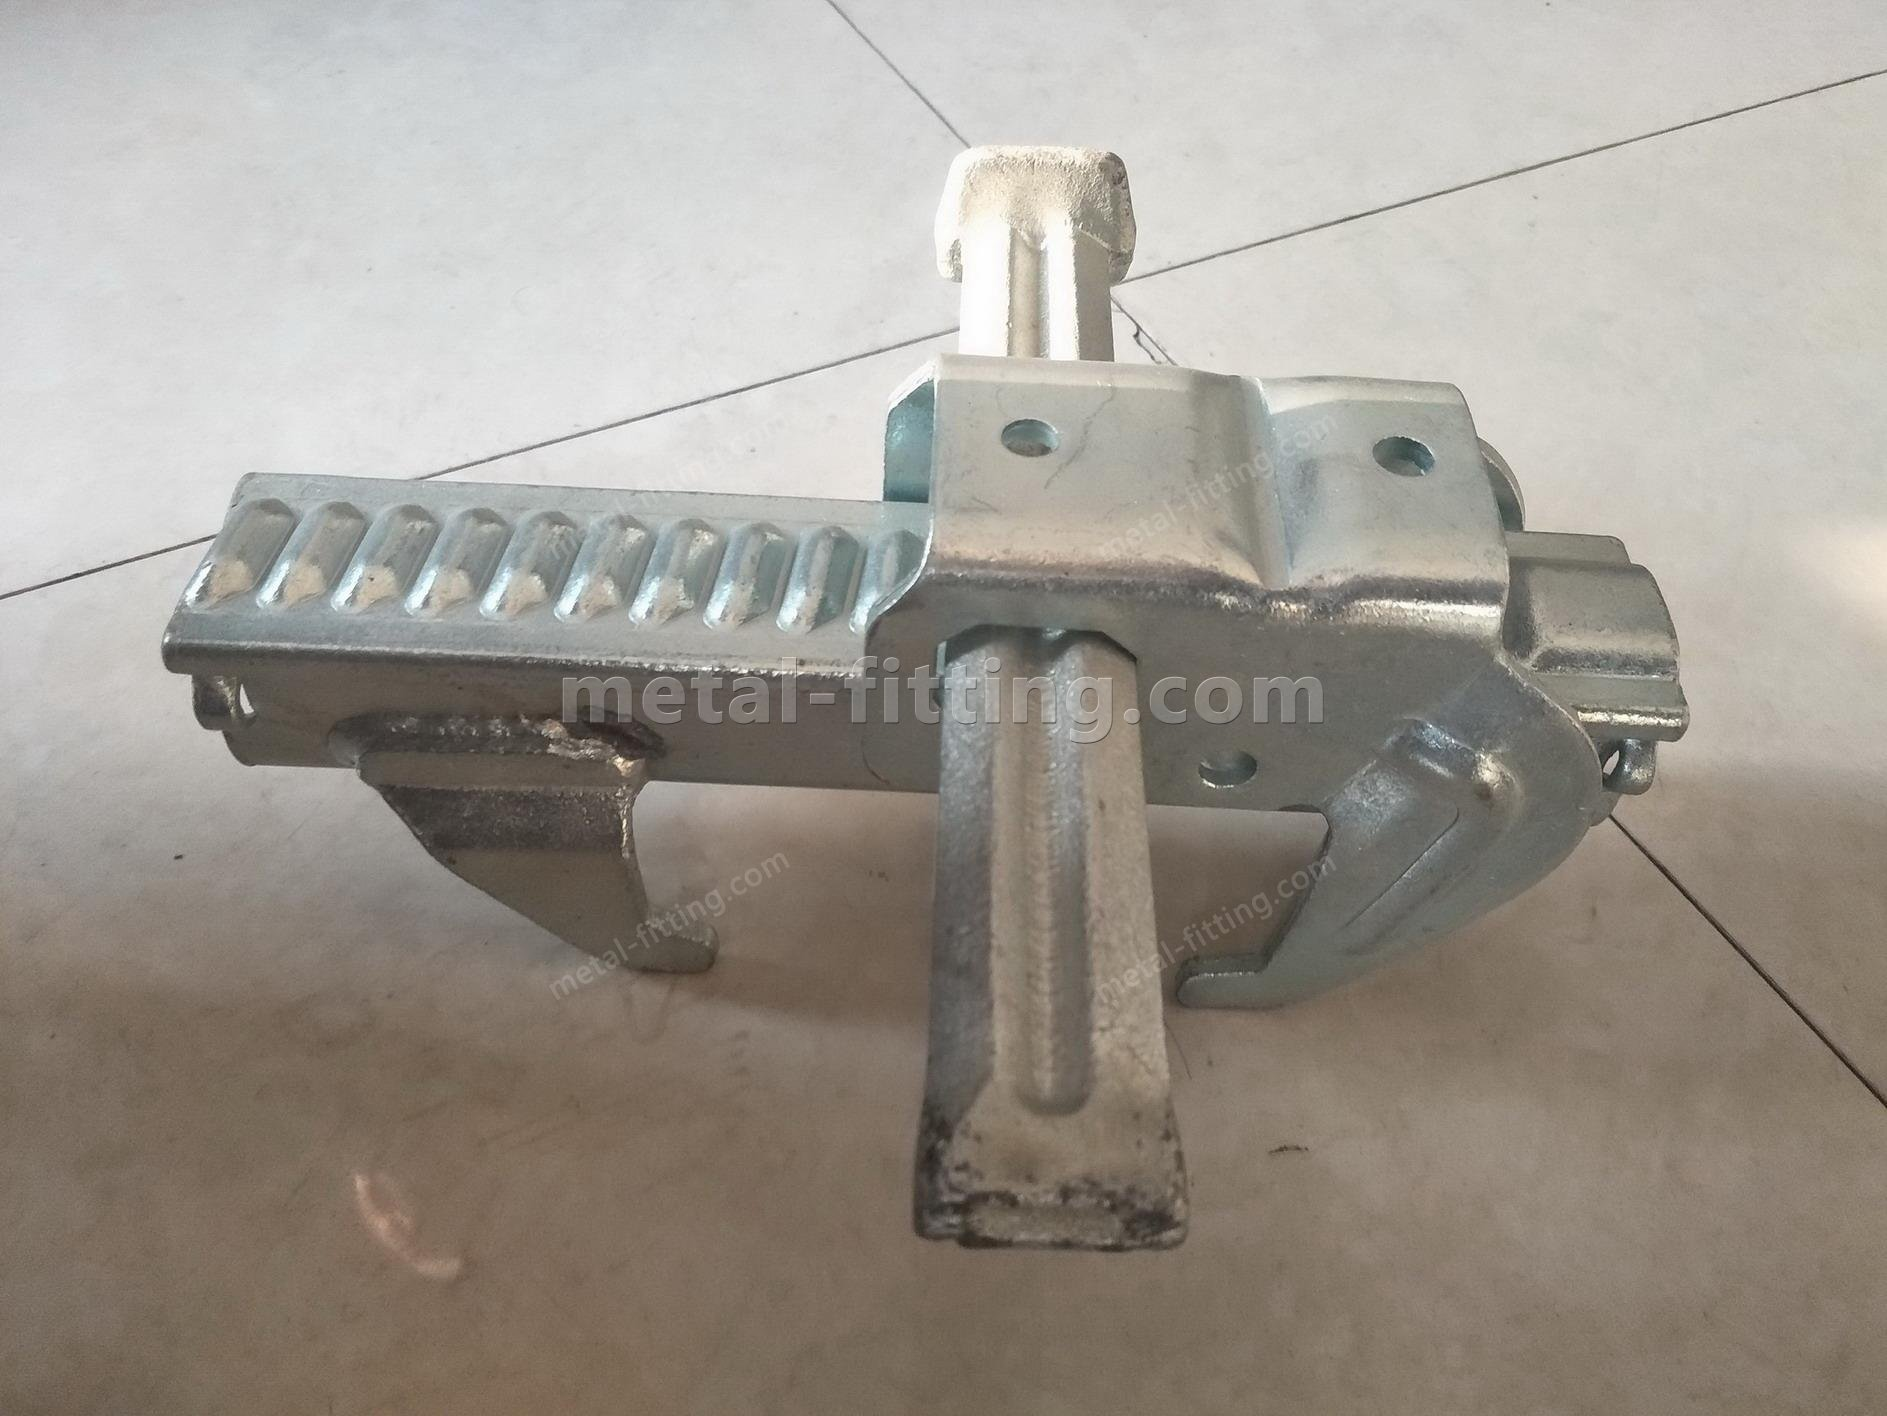 scaffolding fitting  system panel clamp-panel clamp (3)